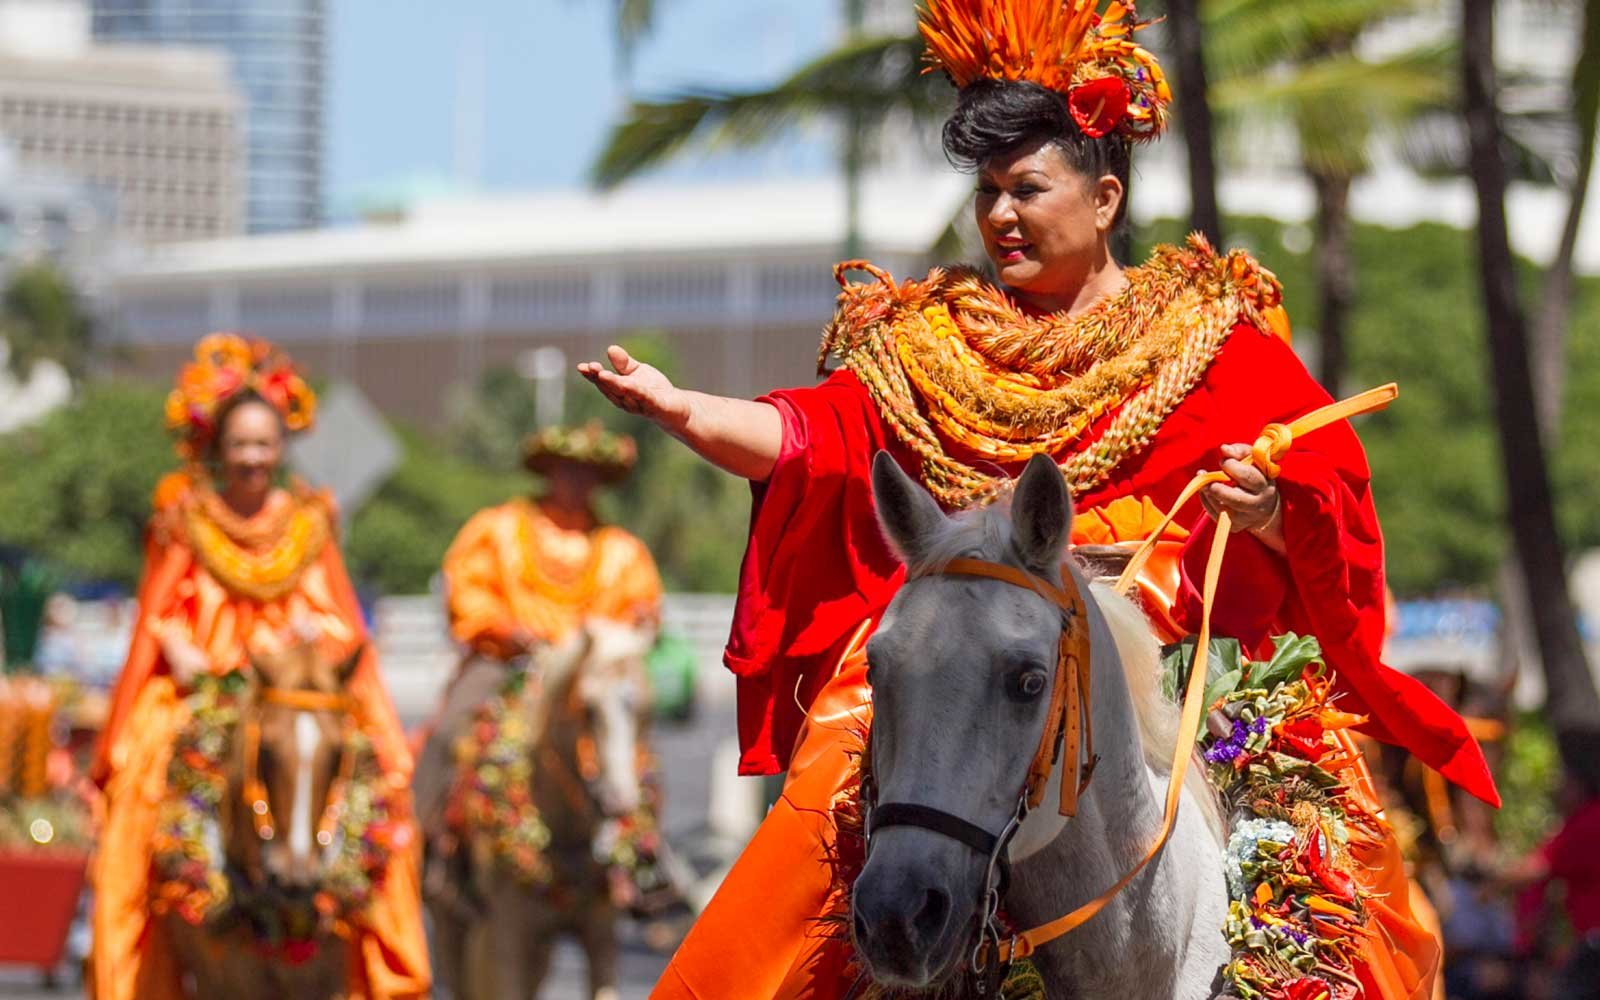 Floral Parade in Hawaii